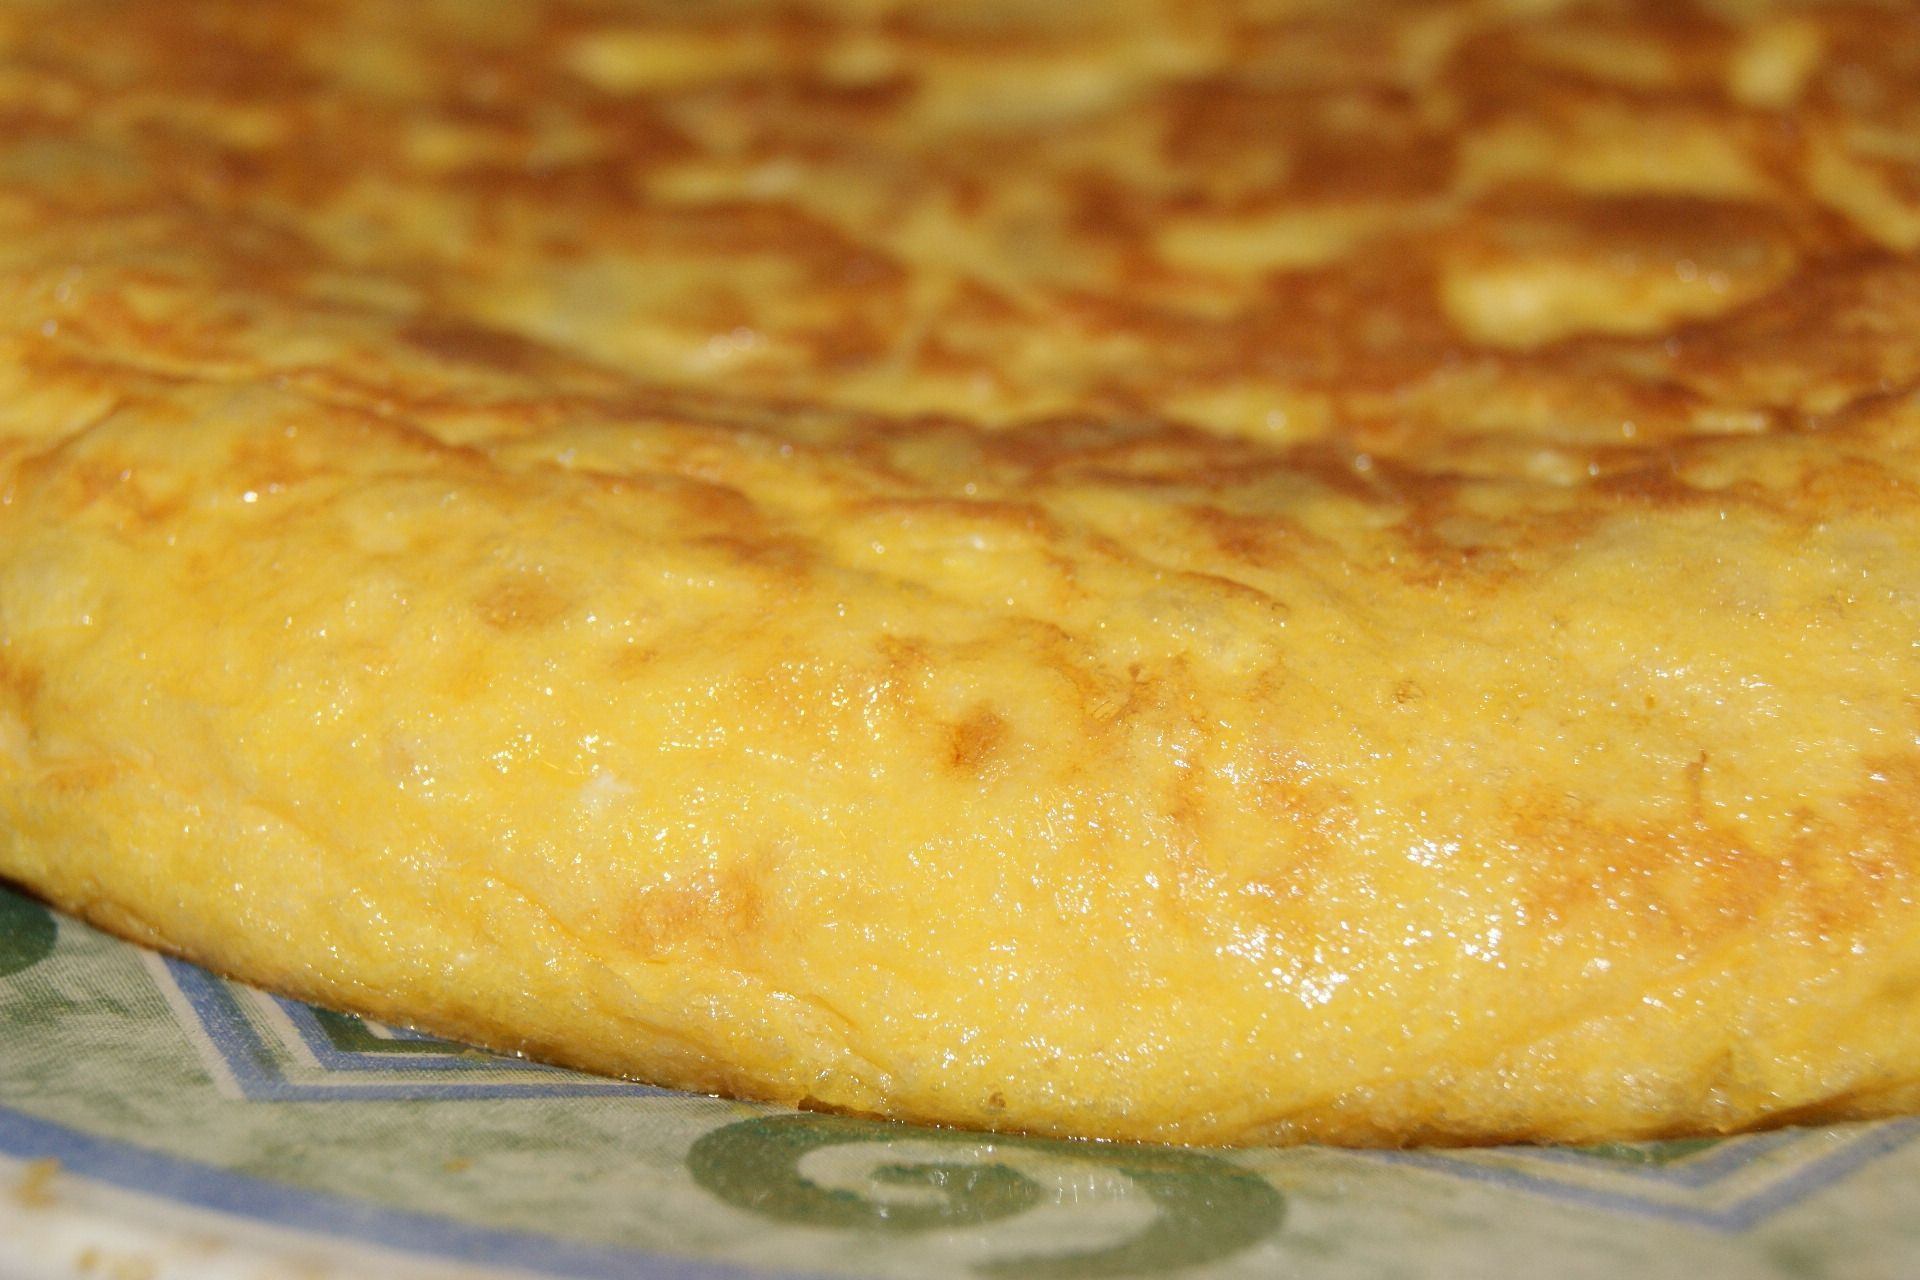 Omelette -  Omelette Omelette Omelette Welcome to our website, We hope you are s... -  Omelette –  Omelette Omelette Omelette Welcome to our website, We hope you are satisfied with the - #hope #mexicanTortillaCake #omelette #PasteldeTortillaconpollo #PasteldeTortilladeharina #PasteldeTortillademaiz #PasteldeTortilladepatata #PasteldeTortilladeverduras #PasteldeTortillareceta #PasteldeTortillasinhorno #PasteldeTortillavariadas #PasteldeTortillaycarne #TortillaCakecreamcheeses #TortillaCakerecipe